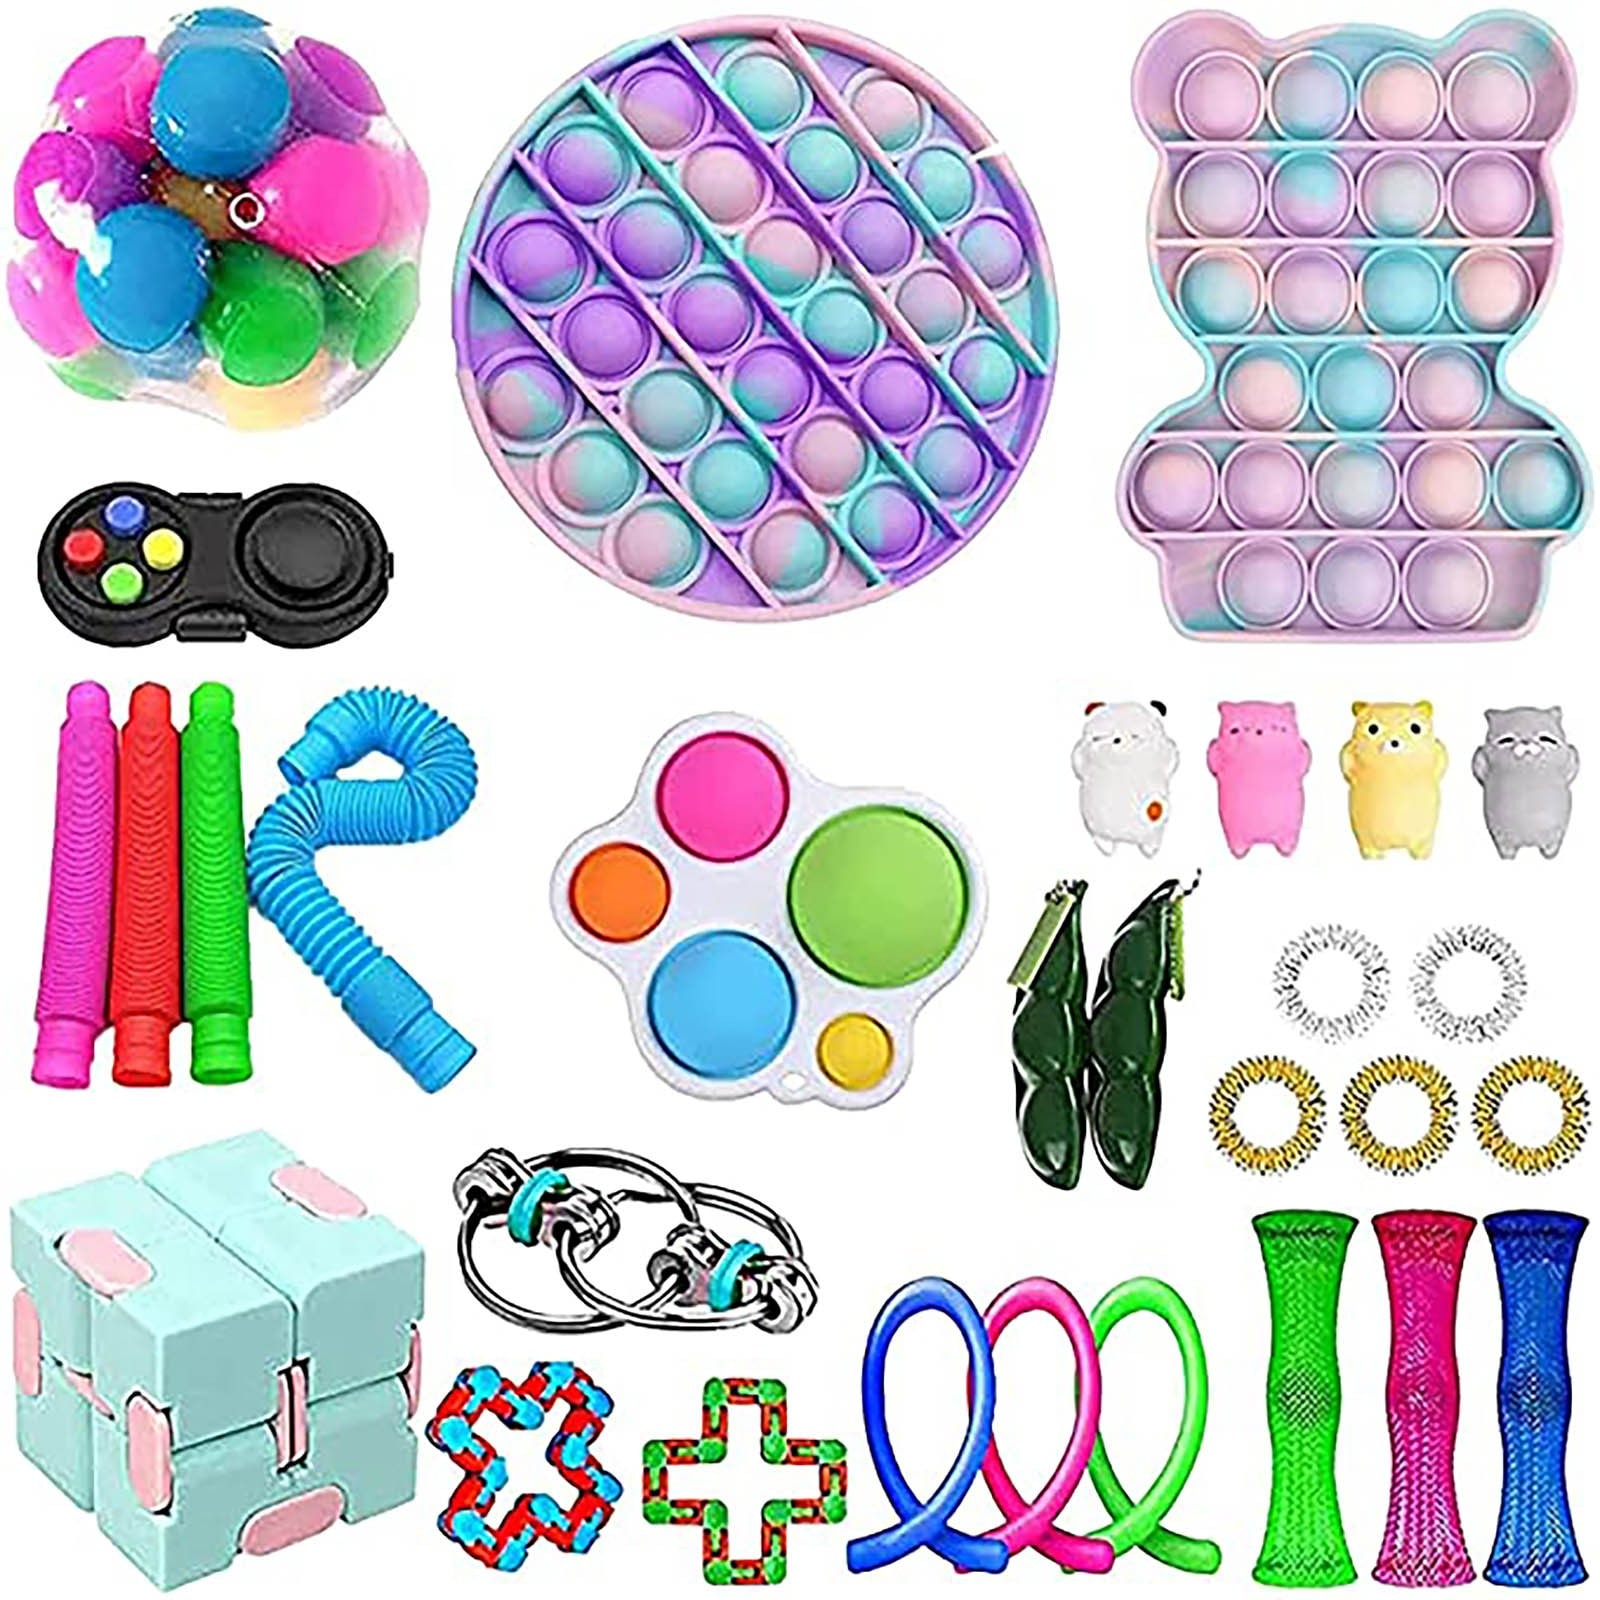 TOP Fidget Toys Pack Anti Stress Toy Set Stress Relief Gift for Adults Girl Children Sensory Antistress Relief Figet Toys Box